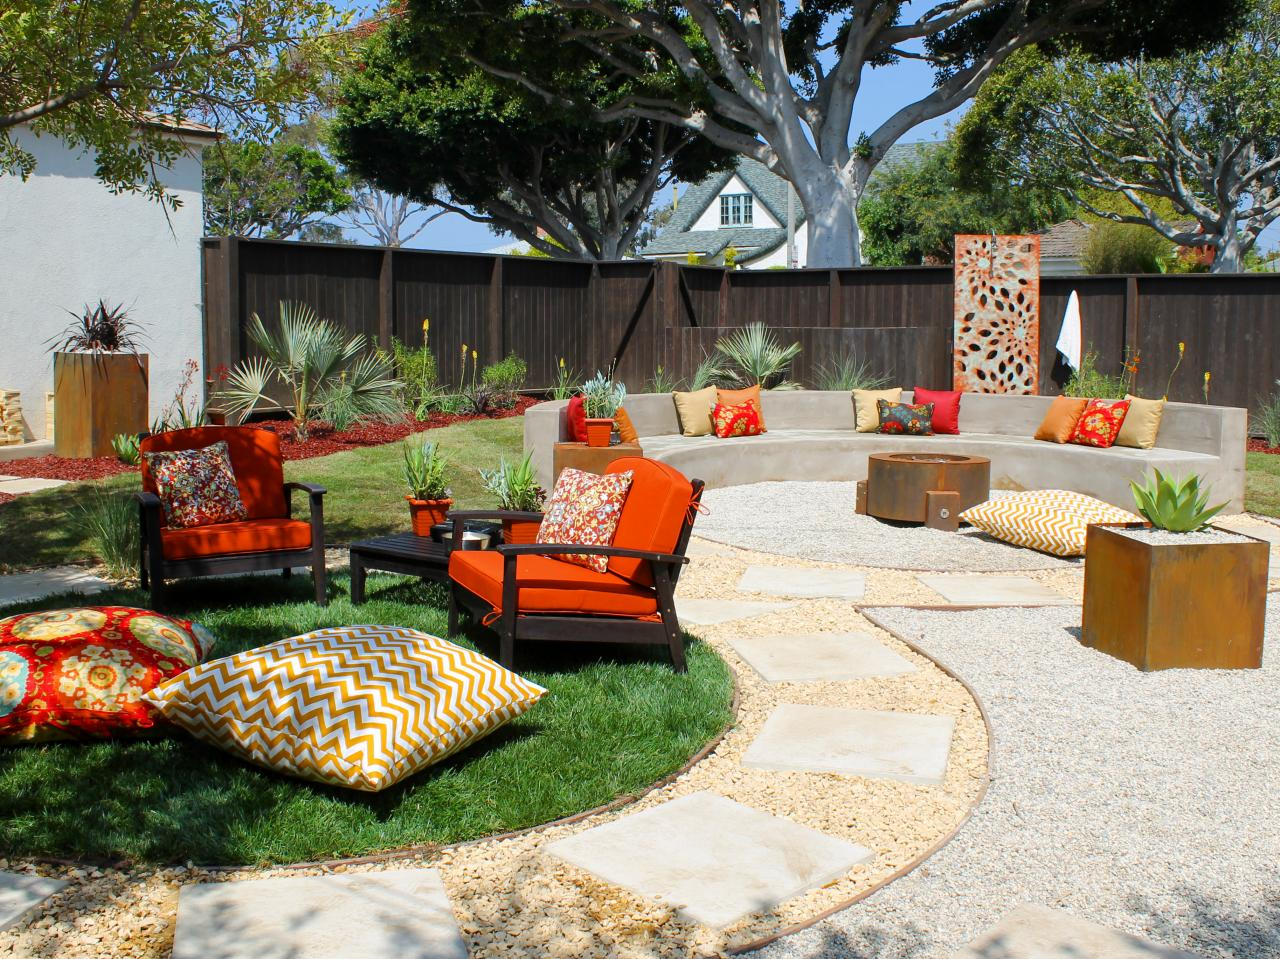 Backyard Fire Pit Designs beautify your backyard with these fire pit design Metal Wall To Reflect The Flames